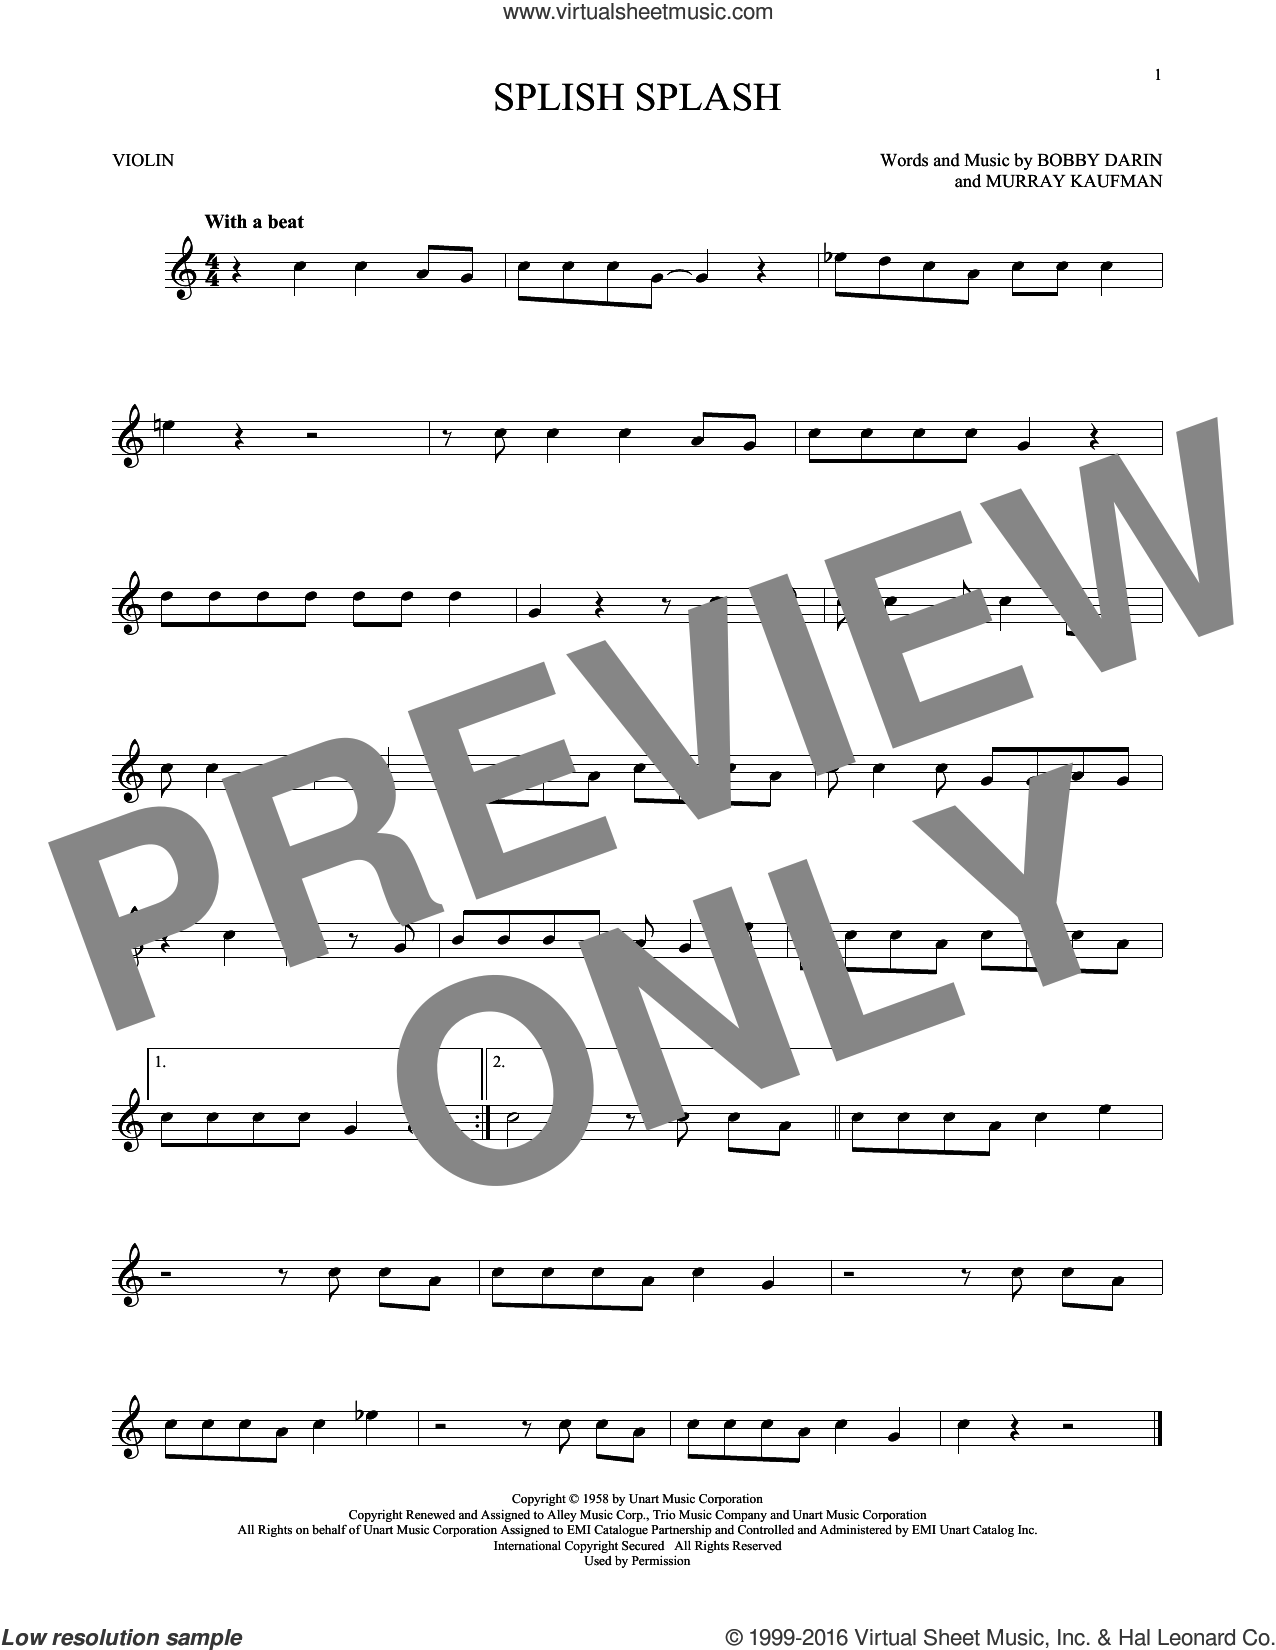 Splish Splash sheet music for violin solo by Bobby Darin and Murray Kaufman, intermediate skill level